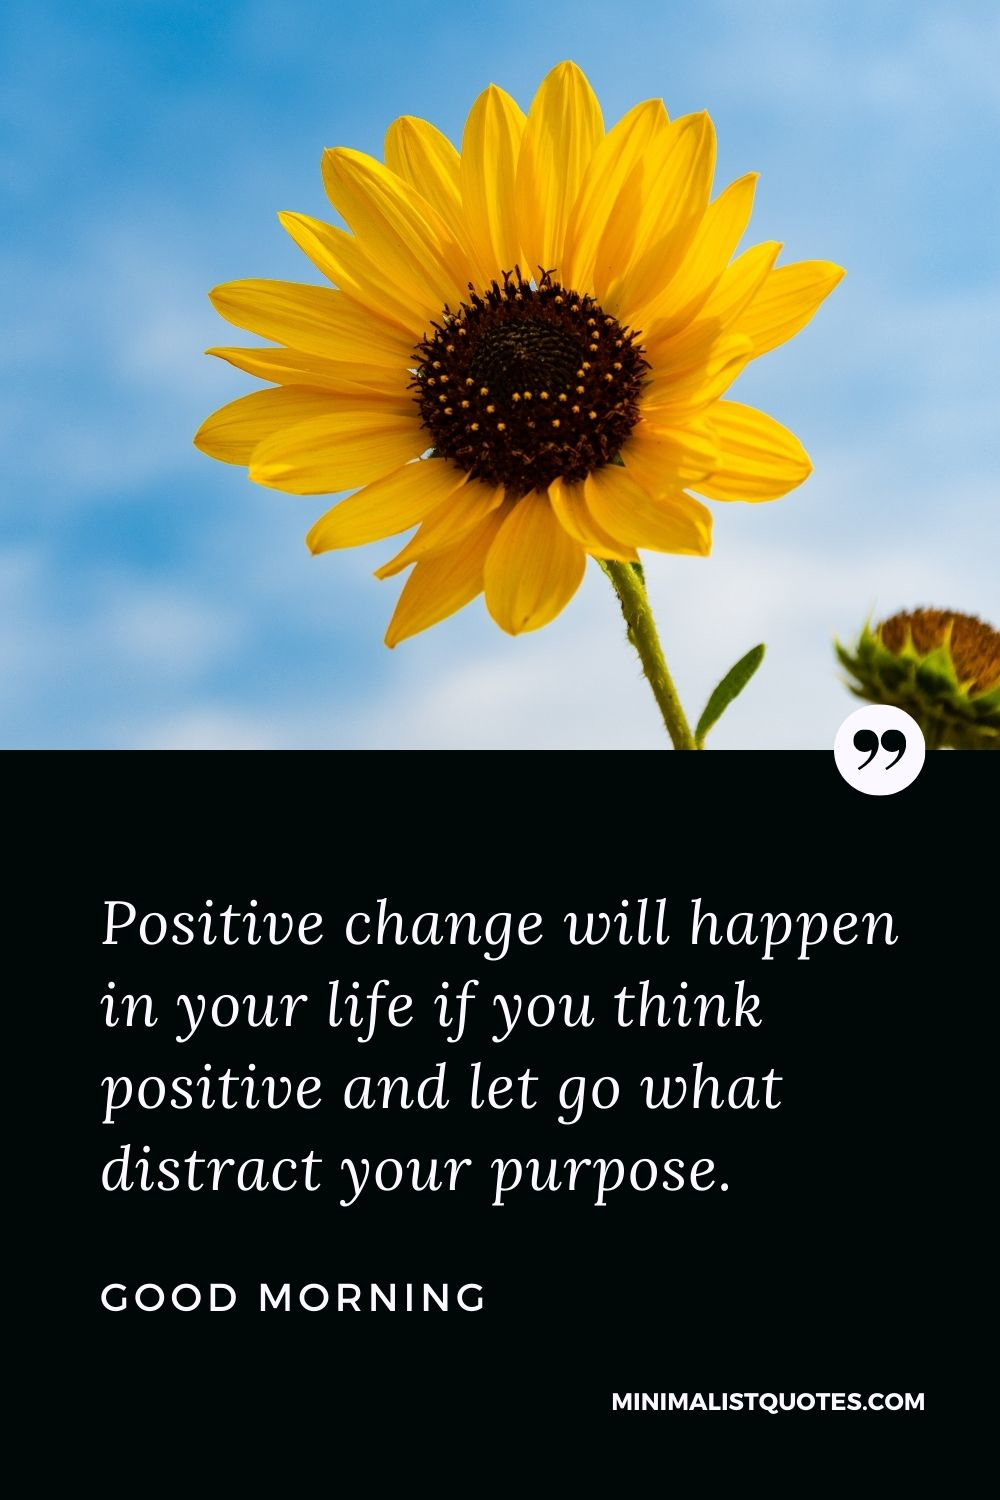 Good Morning Wish & Message With Image: Positive change will happen in your life if you think positive and let go what distract your purpose.